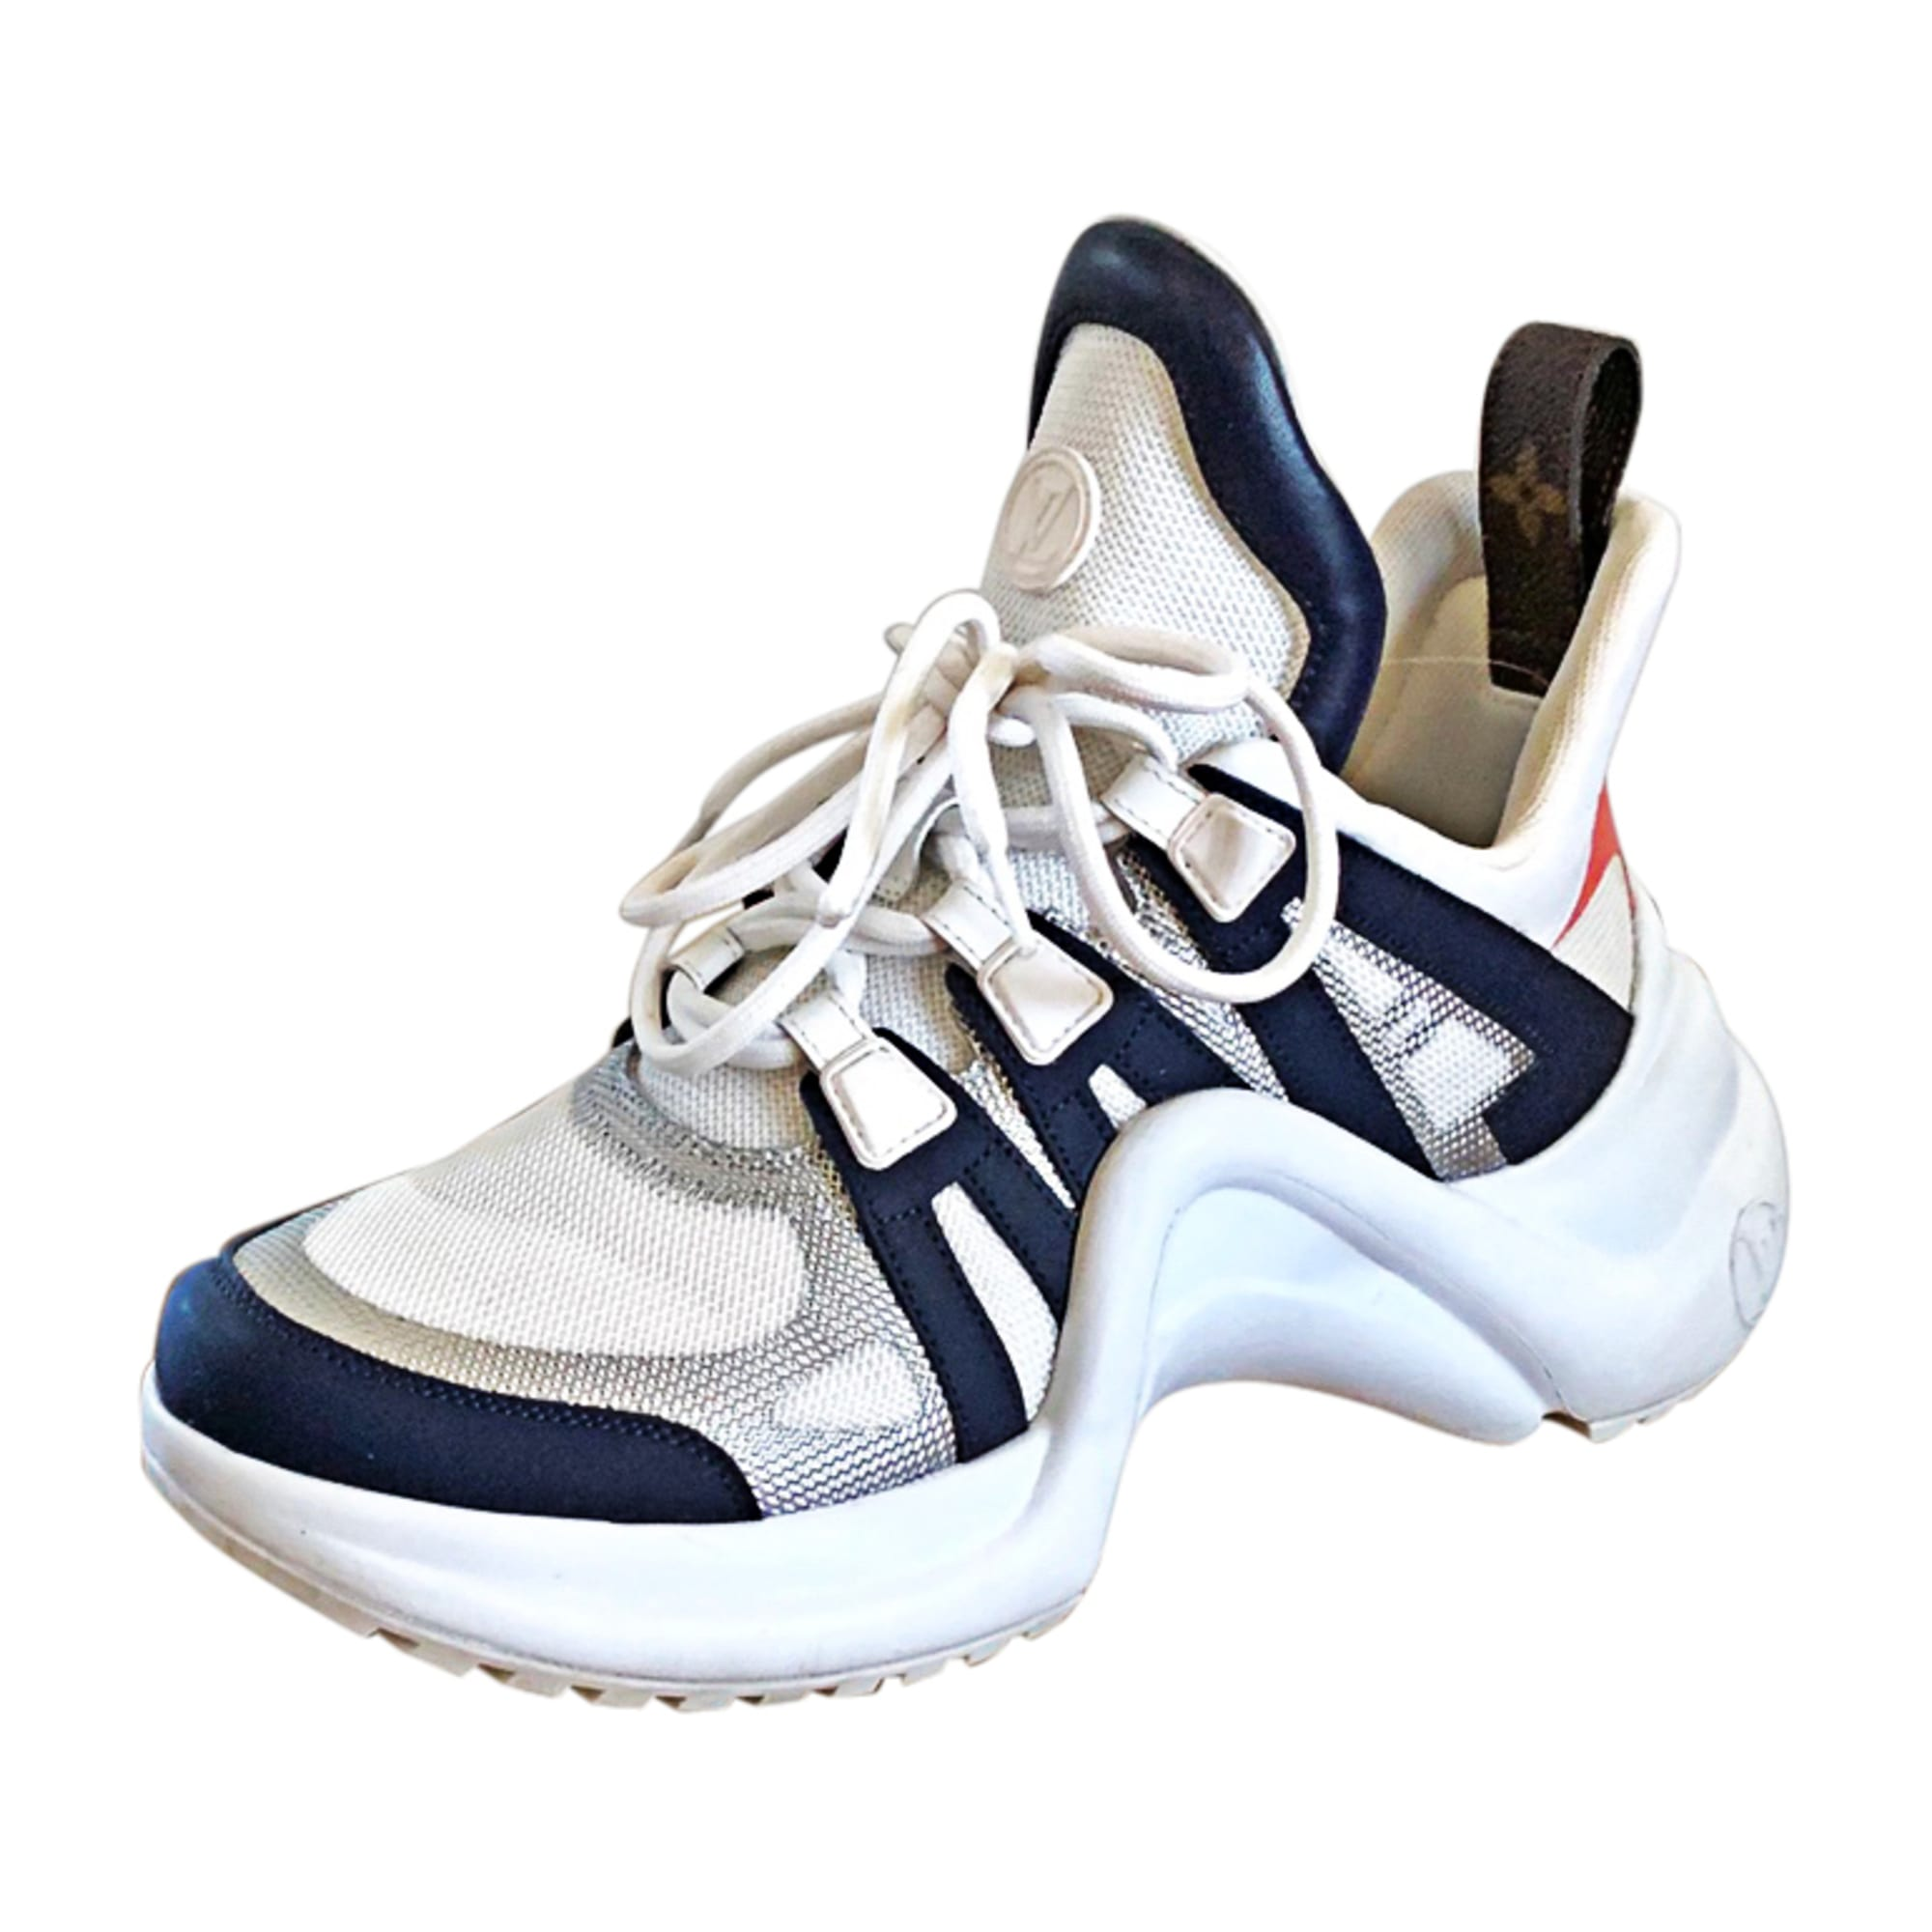 40ec2d8a630 Chaussures de sport LOUIS VUITTON archlight 40 blanc - 8488513